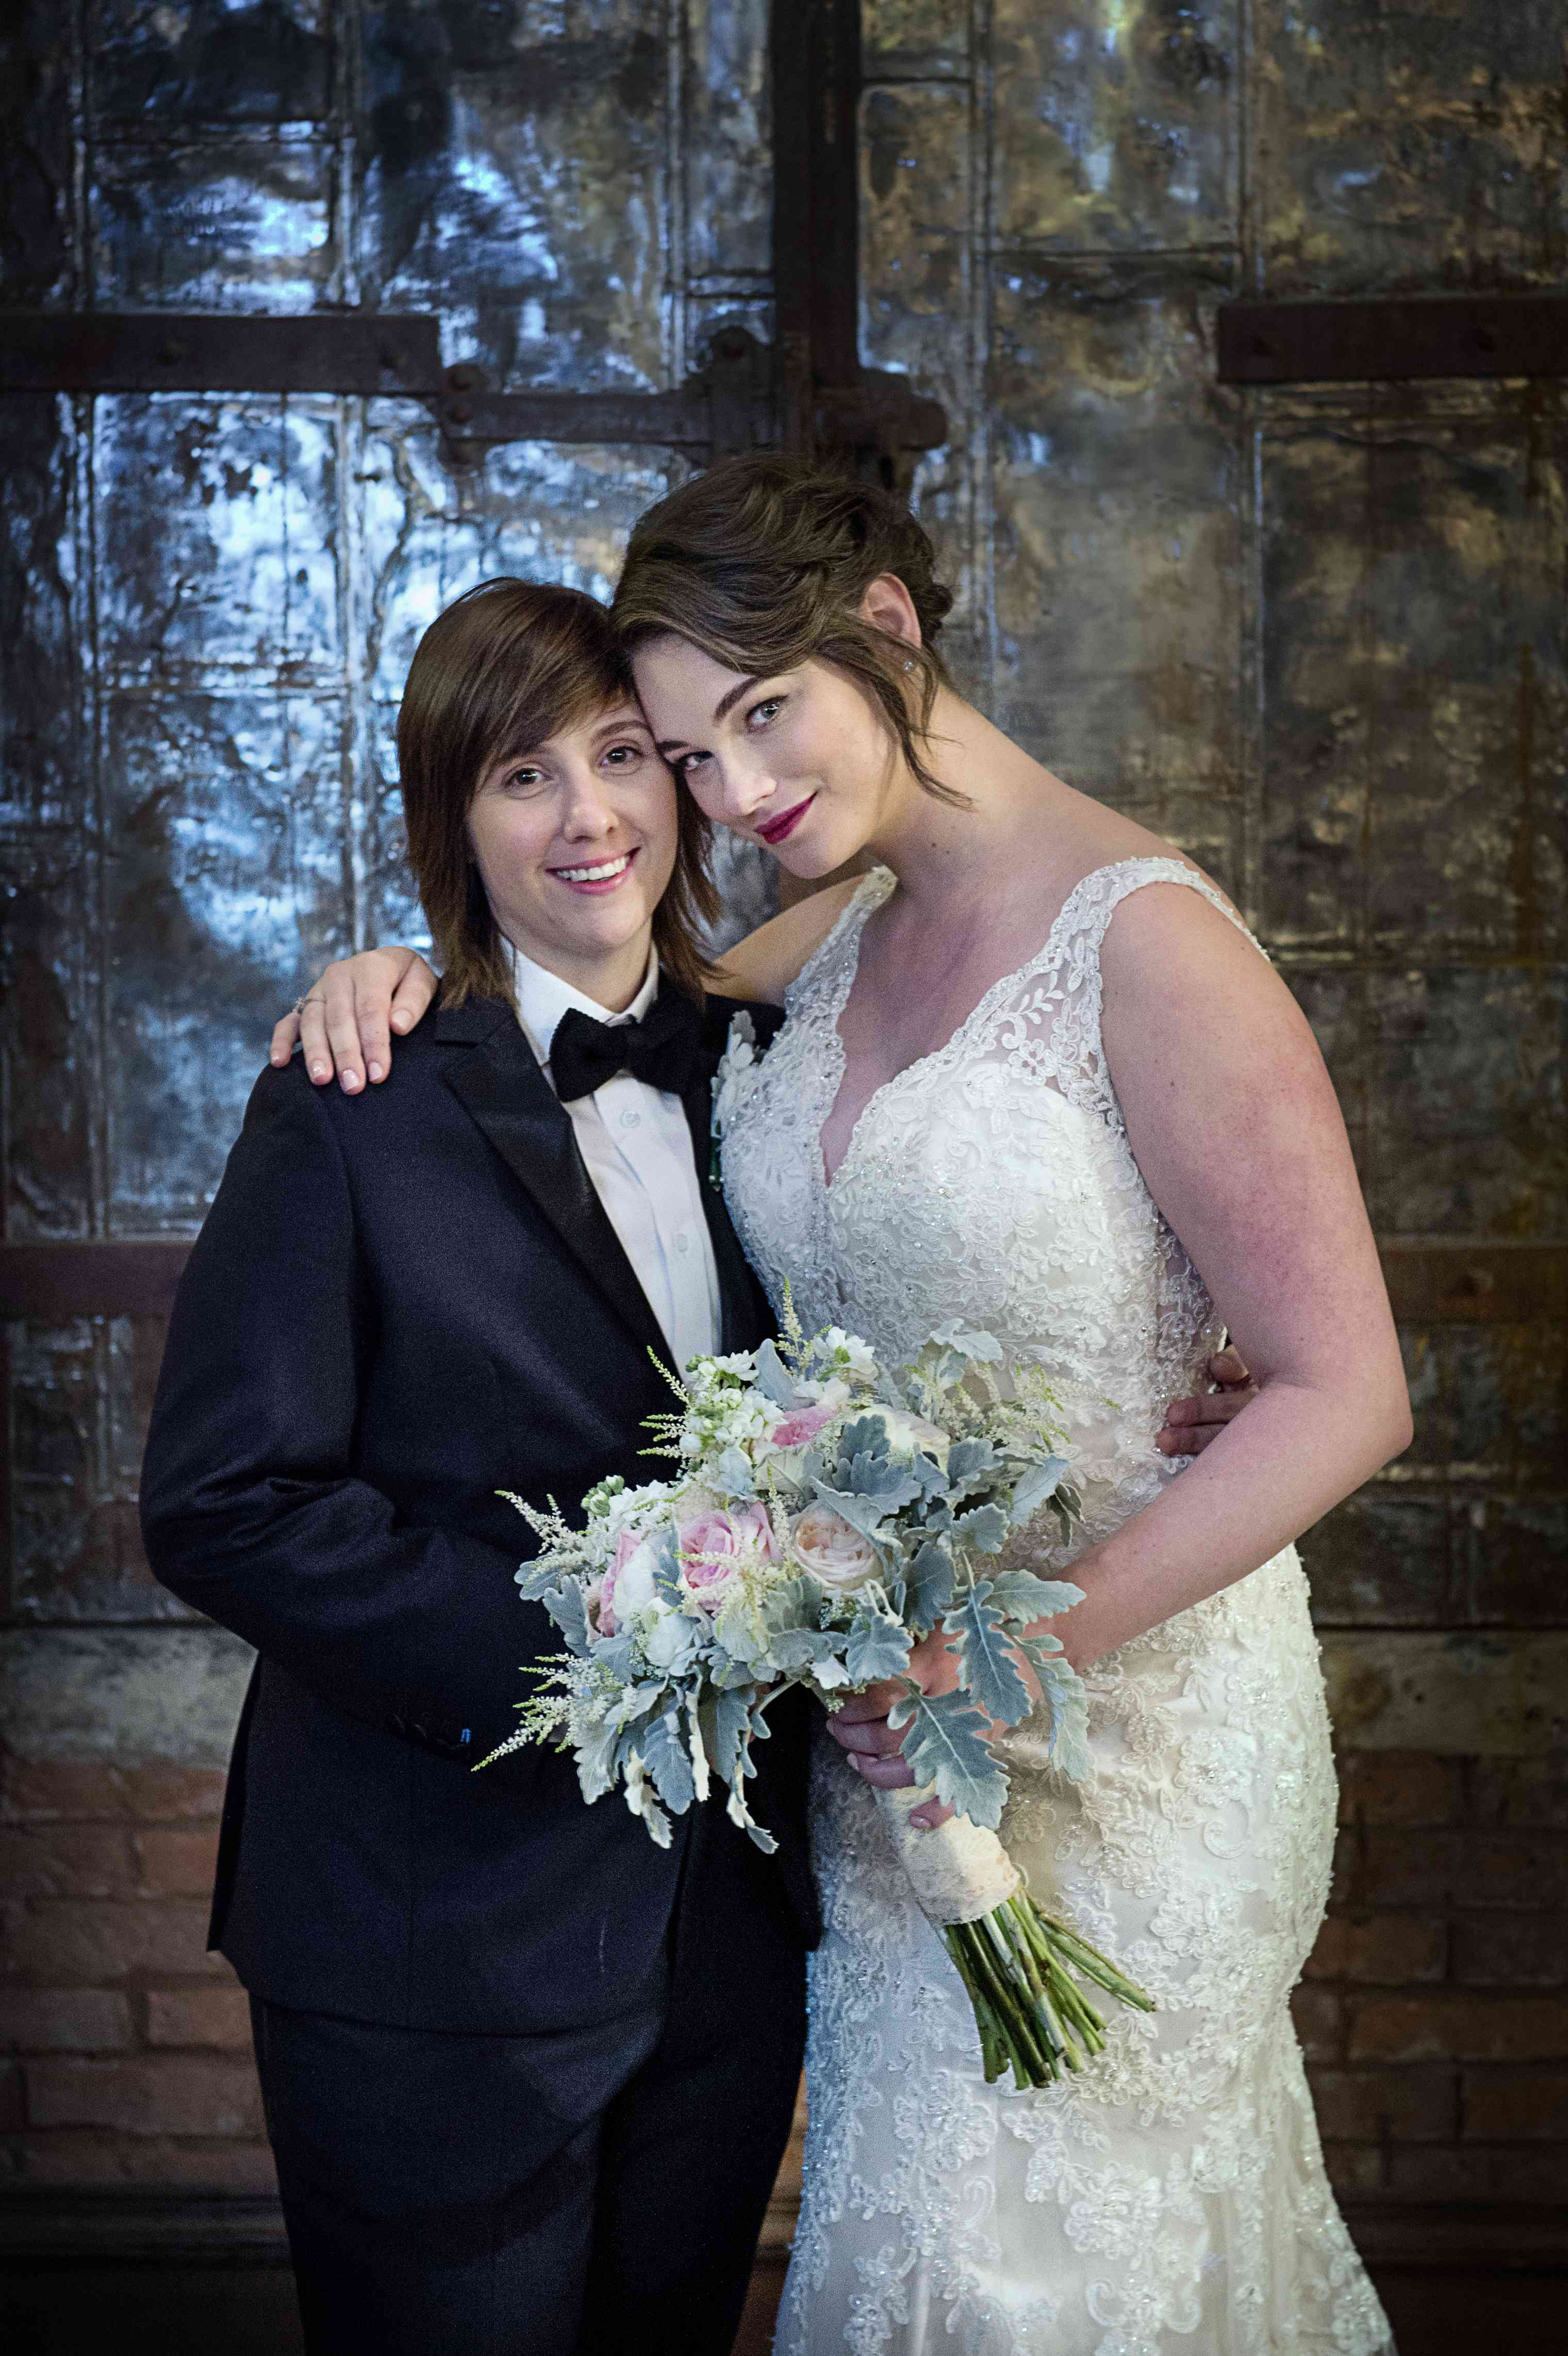 Jennie Runk and spouse on their wedding day